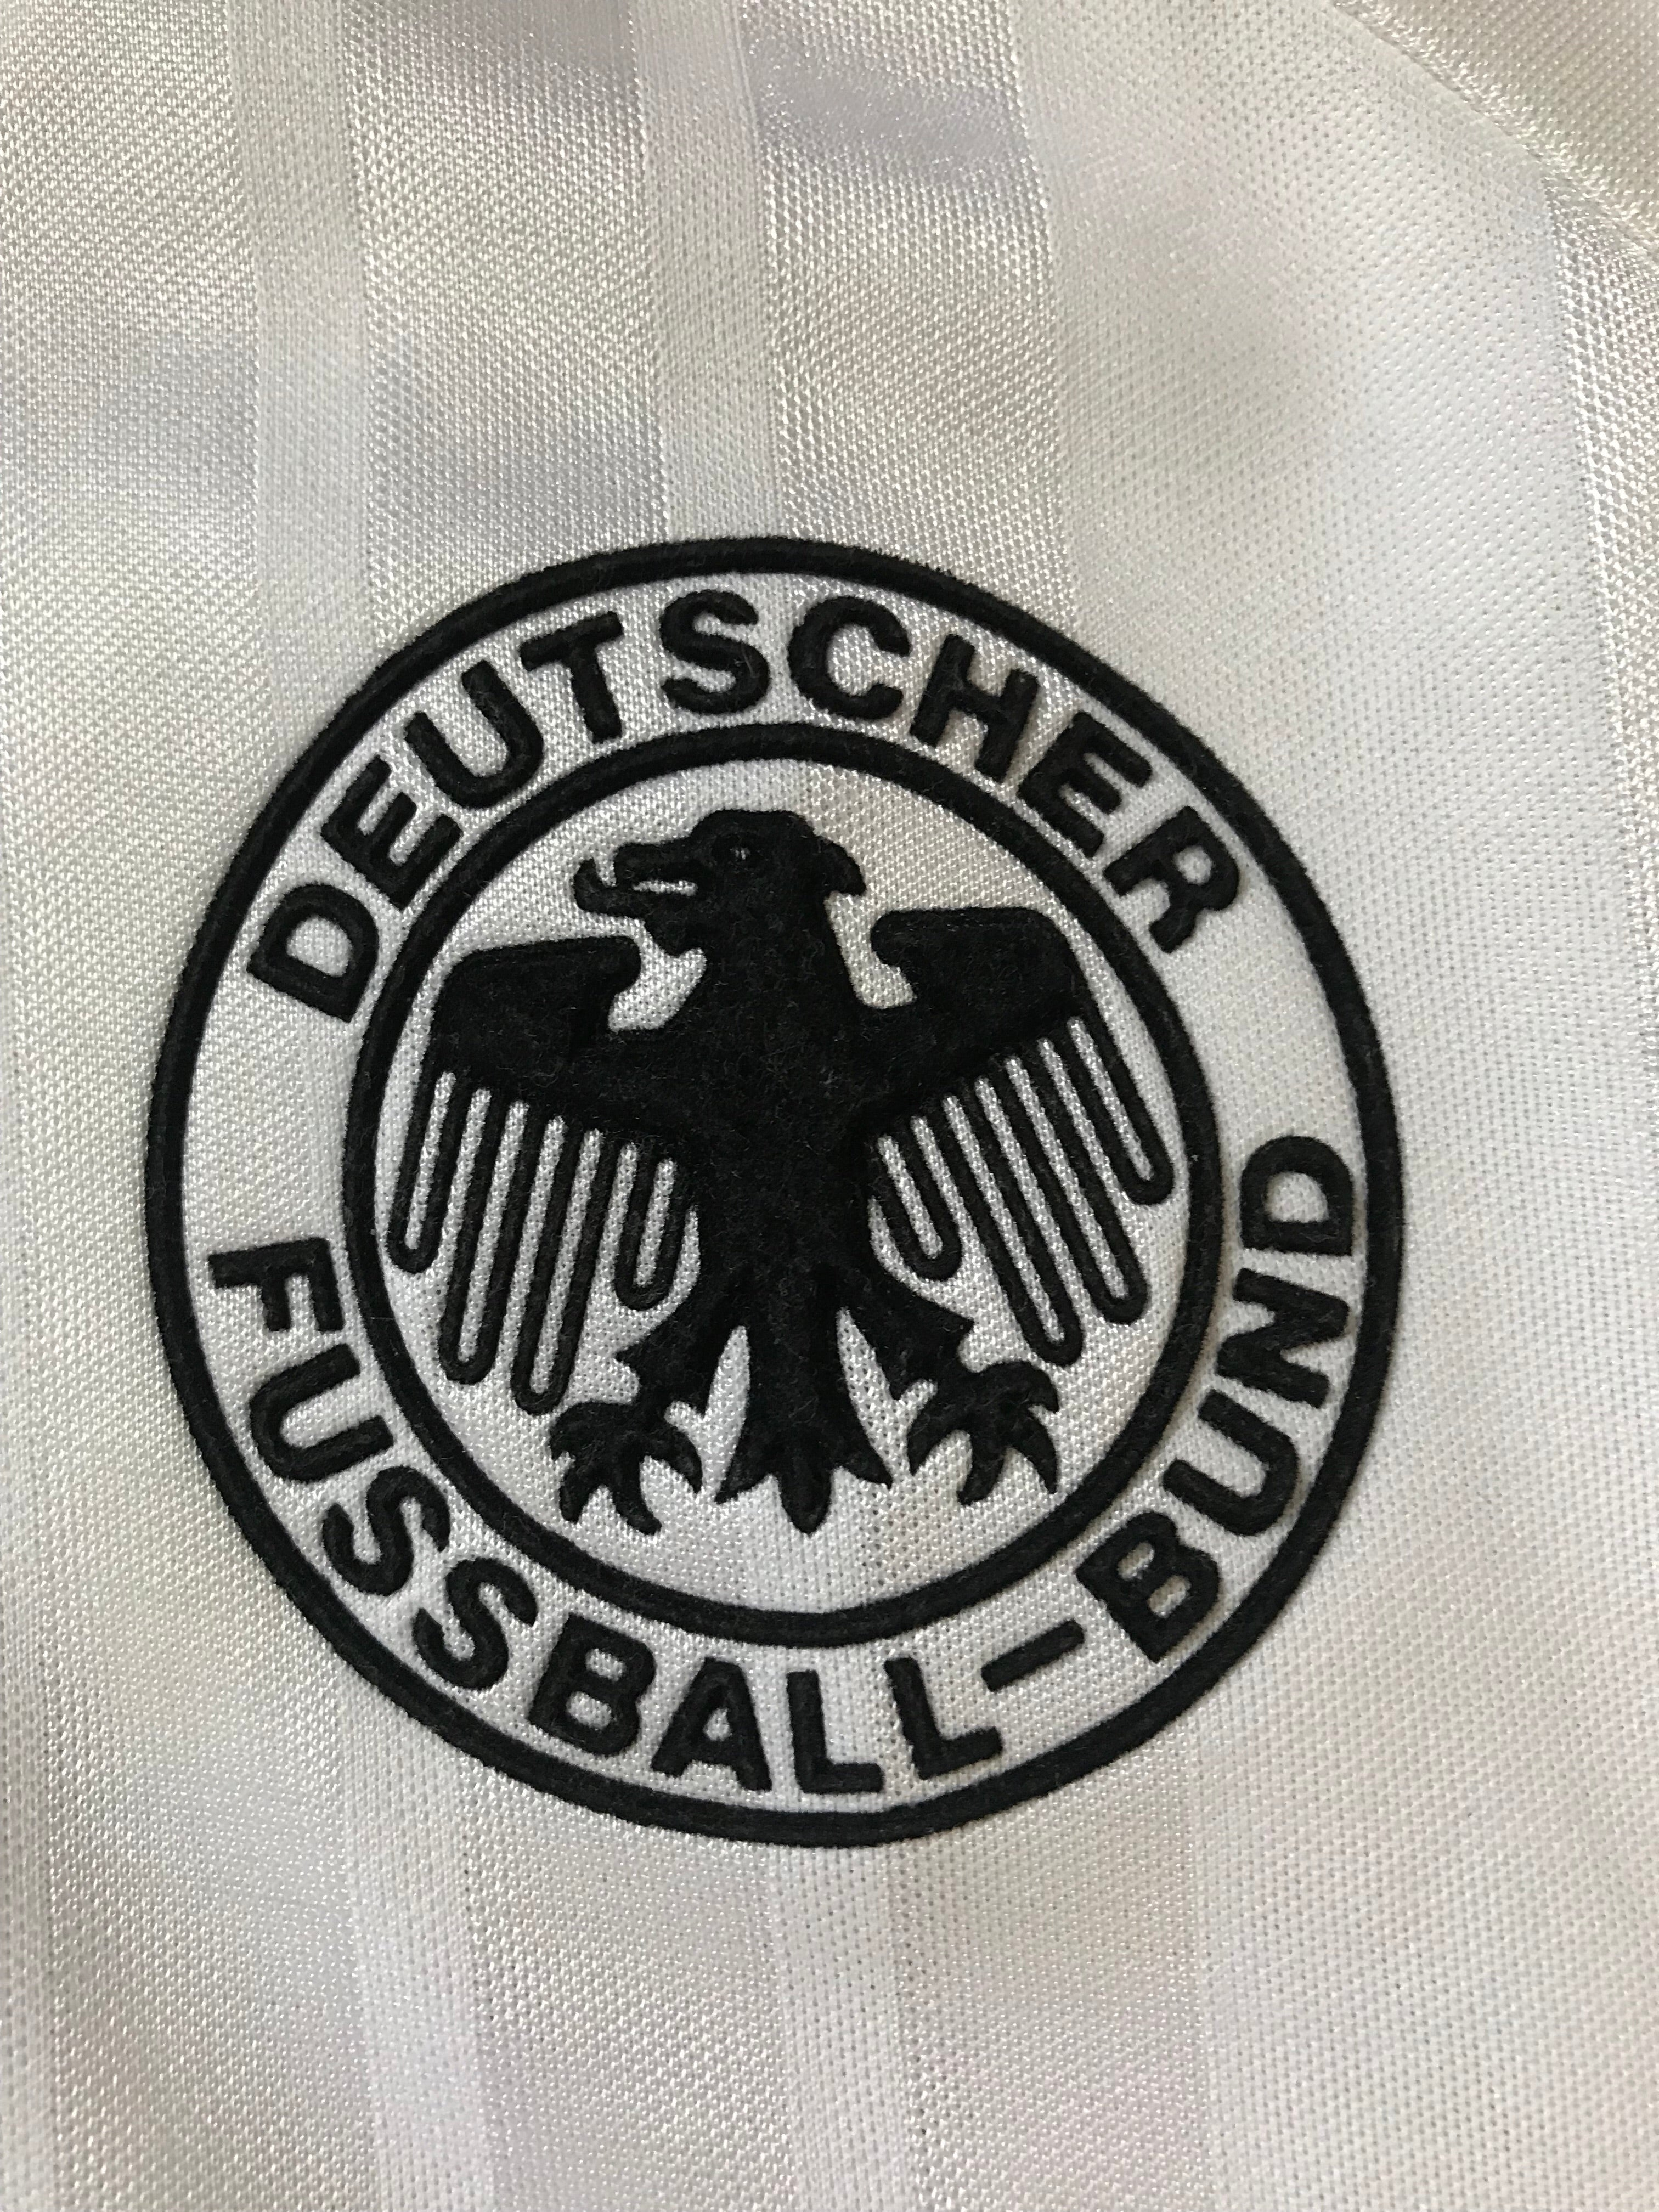 1992/94 Germany *Signed Edition* Home Shirt (XL)